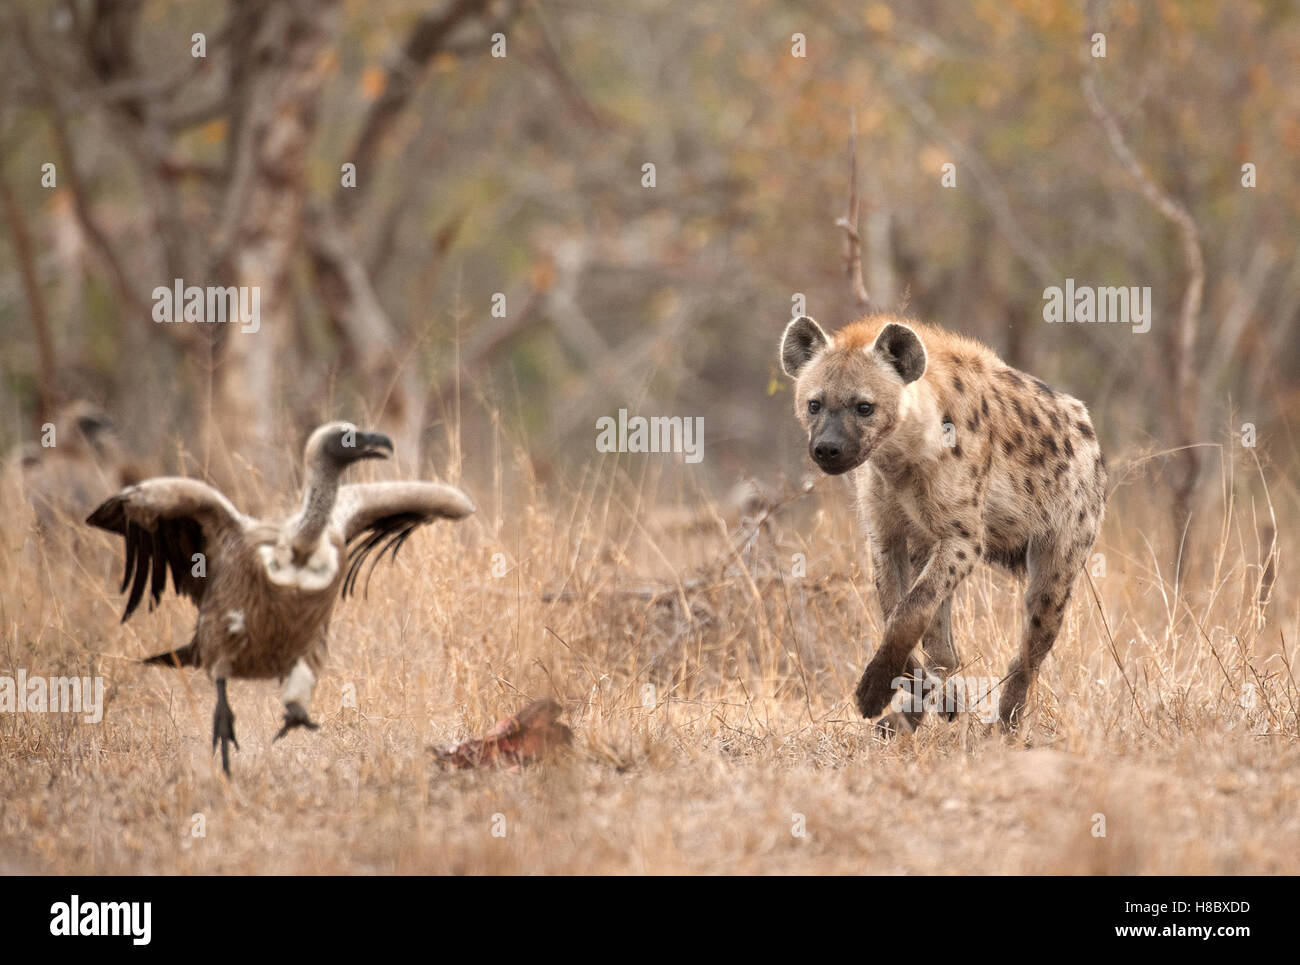 Spotted hyaena chasing vulture - Stock Image